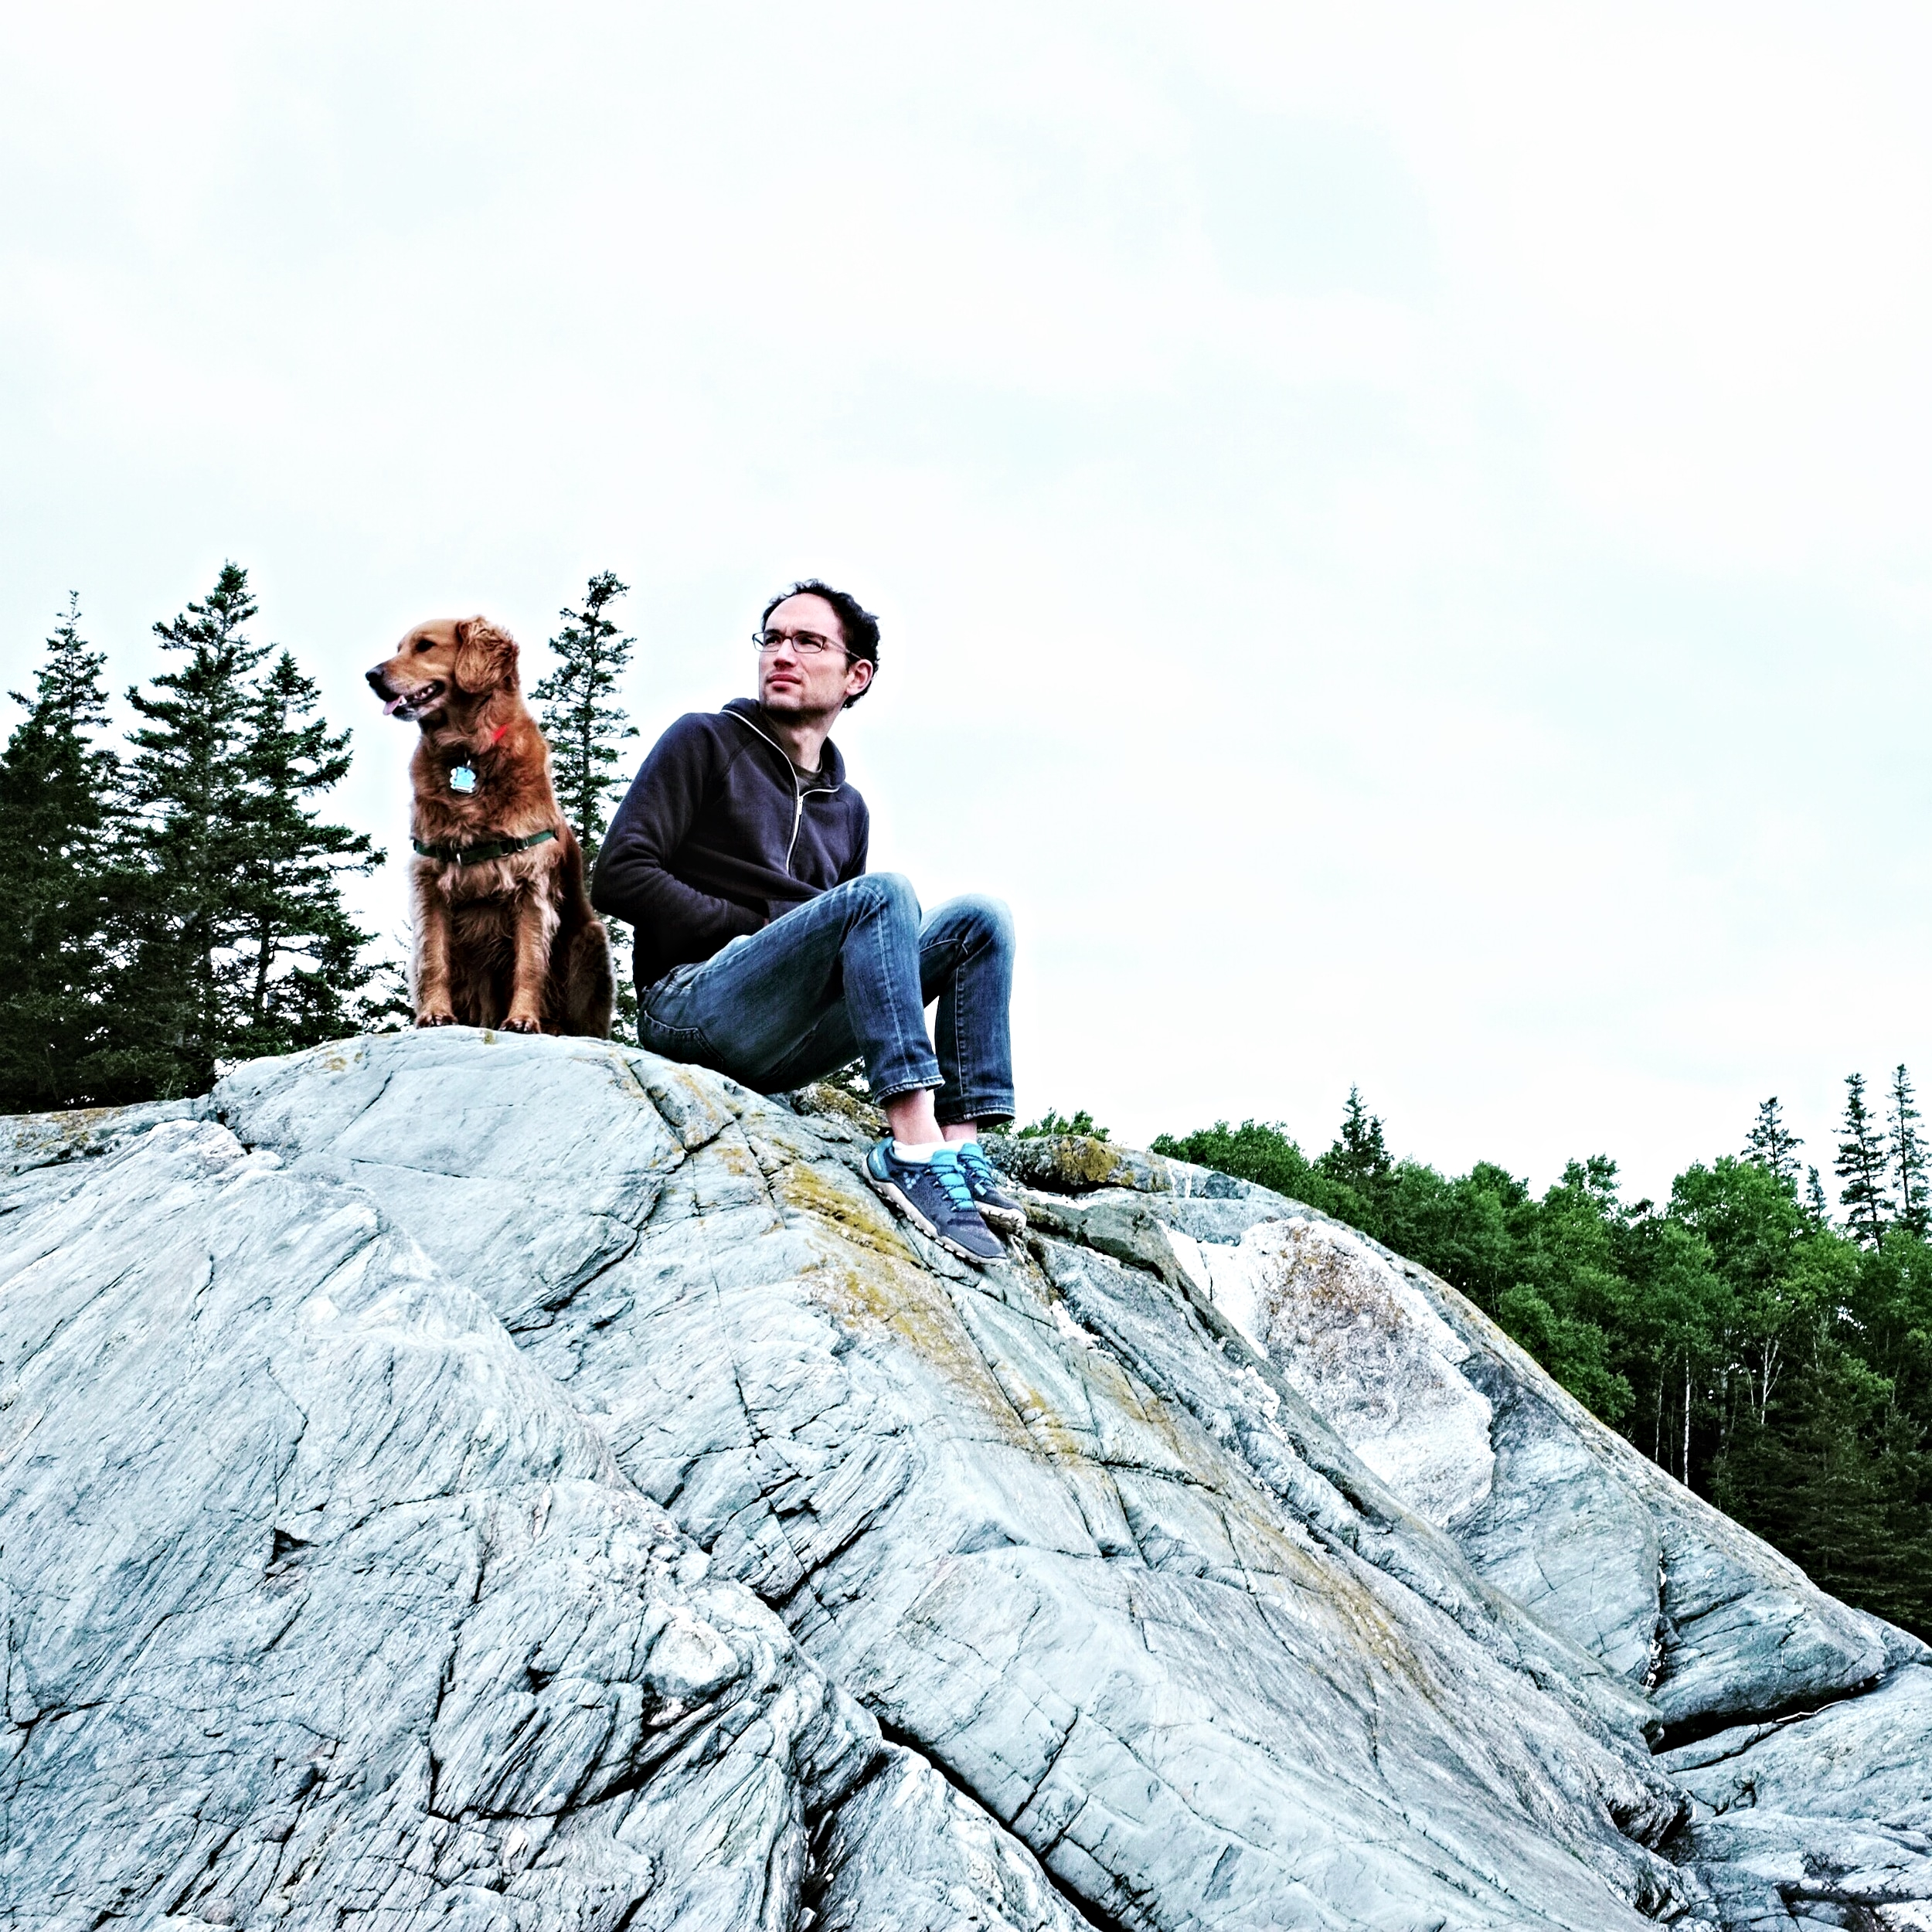 Adam and Elsie taking a break at Sylvester's Cove in Deer Isle.